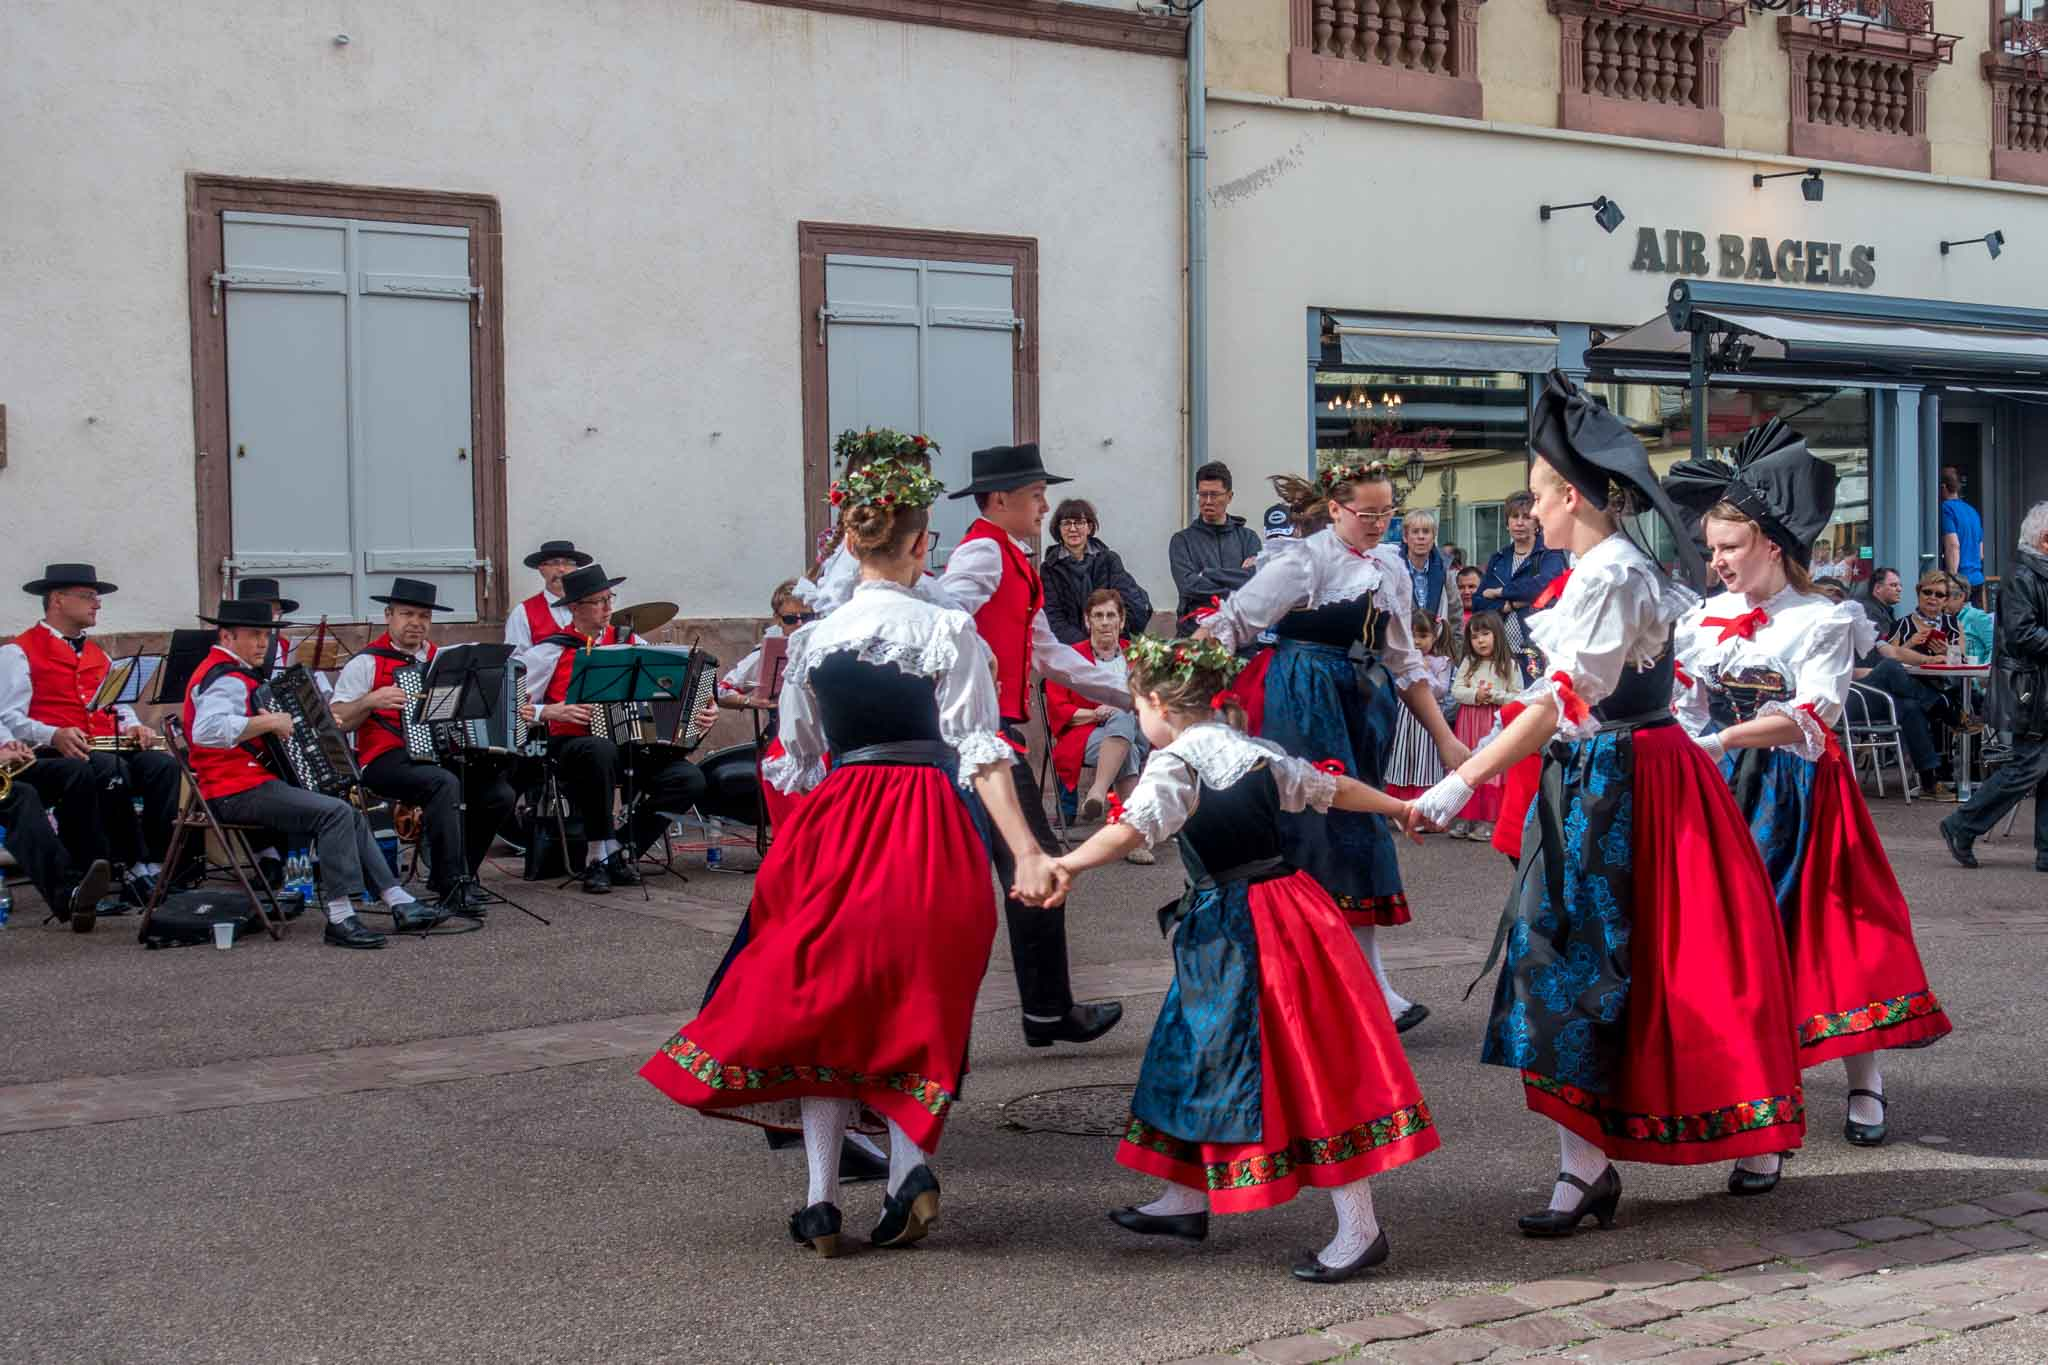 People dancing in traditional Alsatian clothing